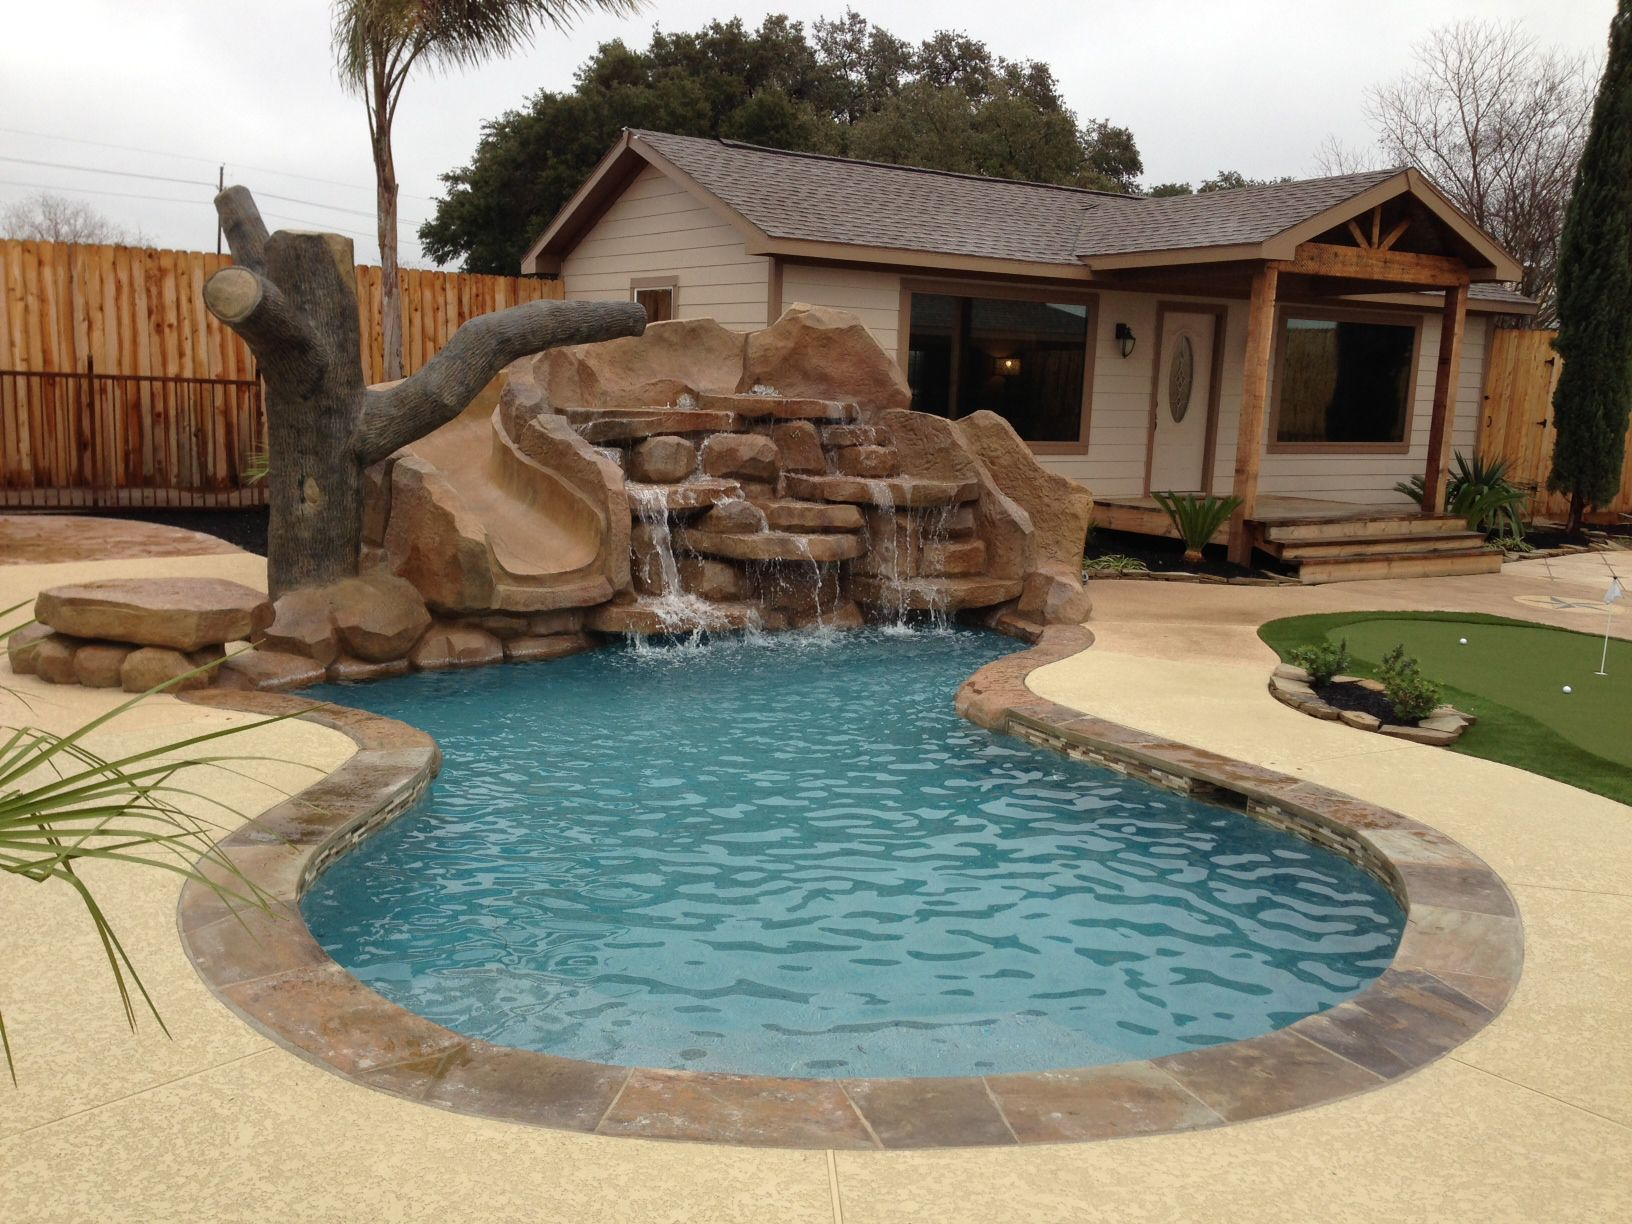 Small Swimming Pools Plus Amusing Vintage Stone And Slider Near Pool Designs Slide Garden Tropic Small Backyard Pools Small Pool Design Swimming Pools Backyard